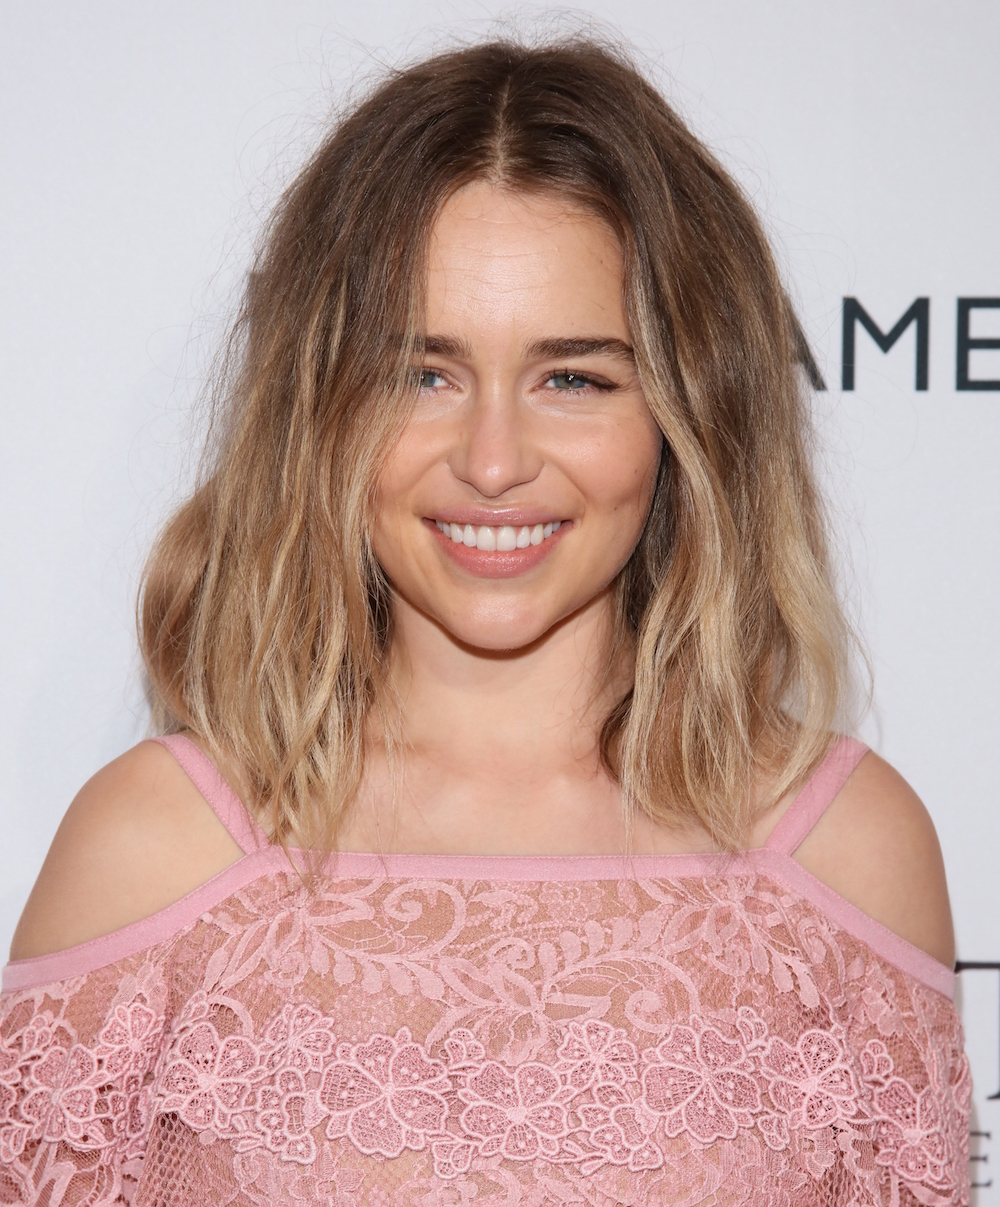 Emilia-Clarke-blonde-ombre-hair-colors-2018-winter